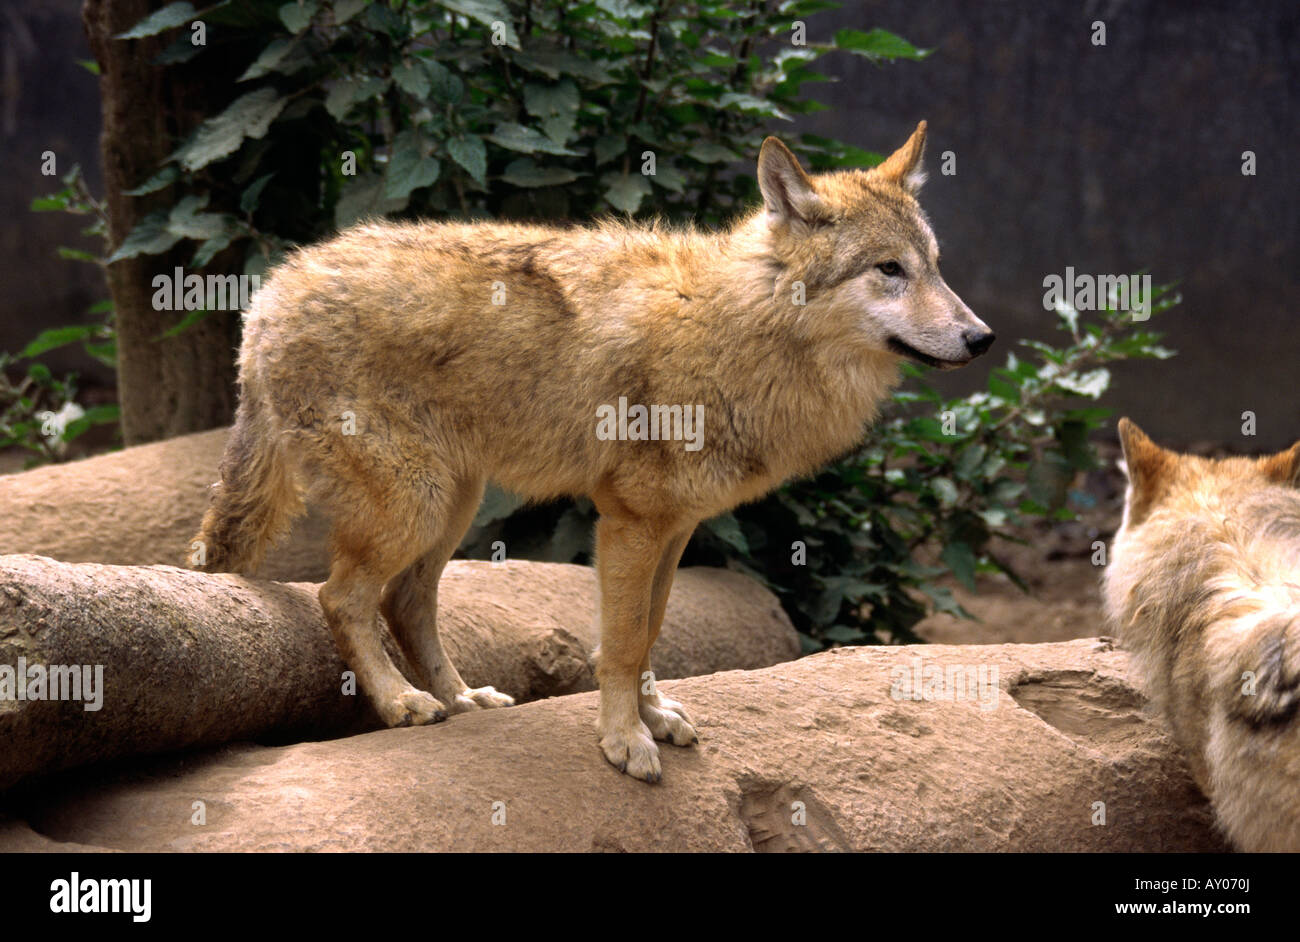 India West Bengal Darjeeling Zoo Himalayan Wolf Canis Inpus in captivity - Stock Image